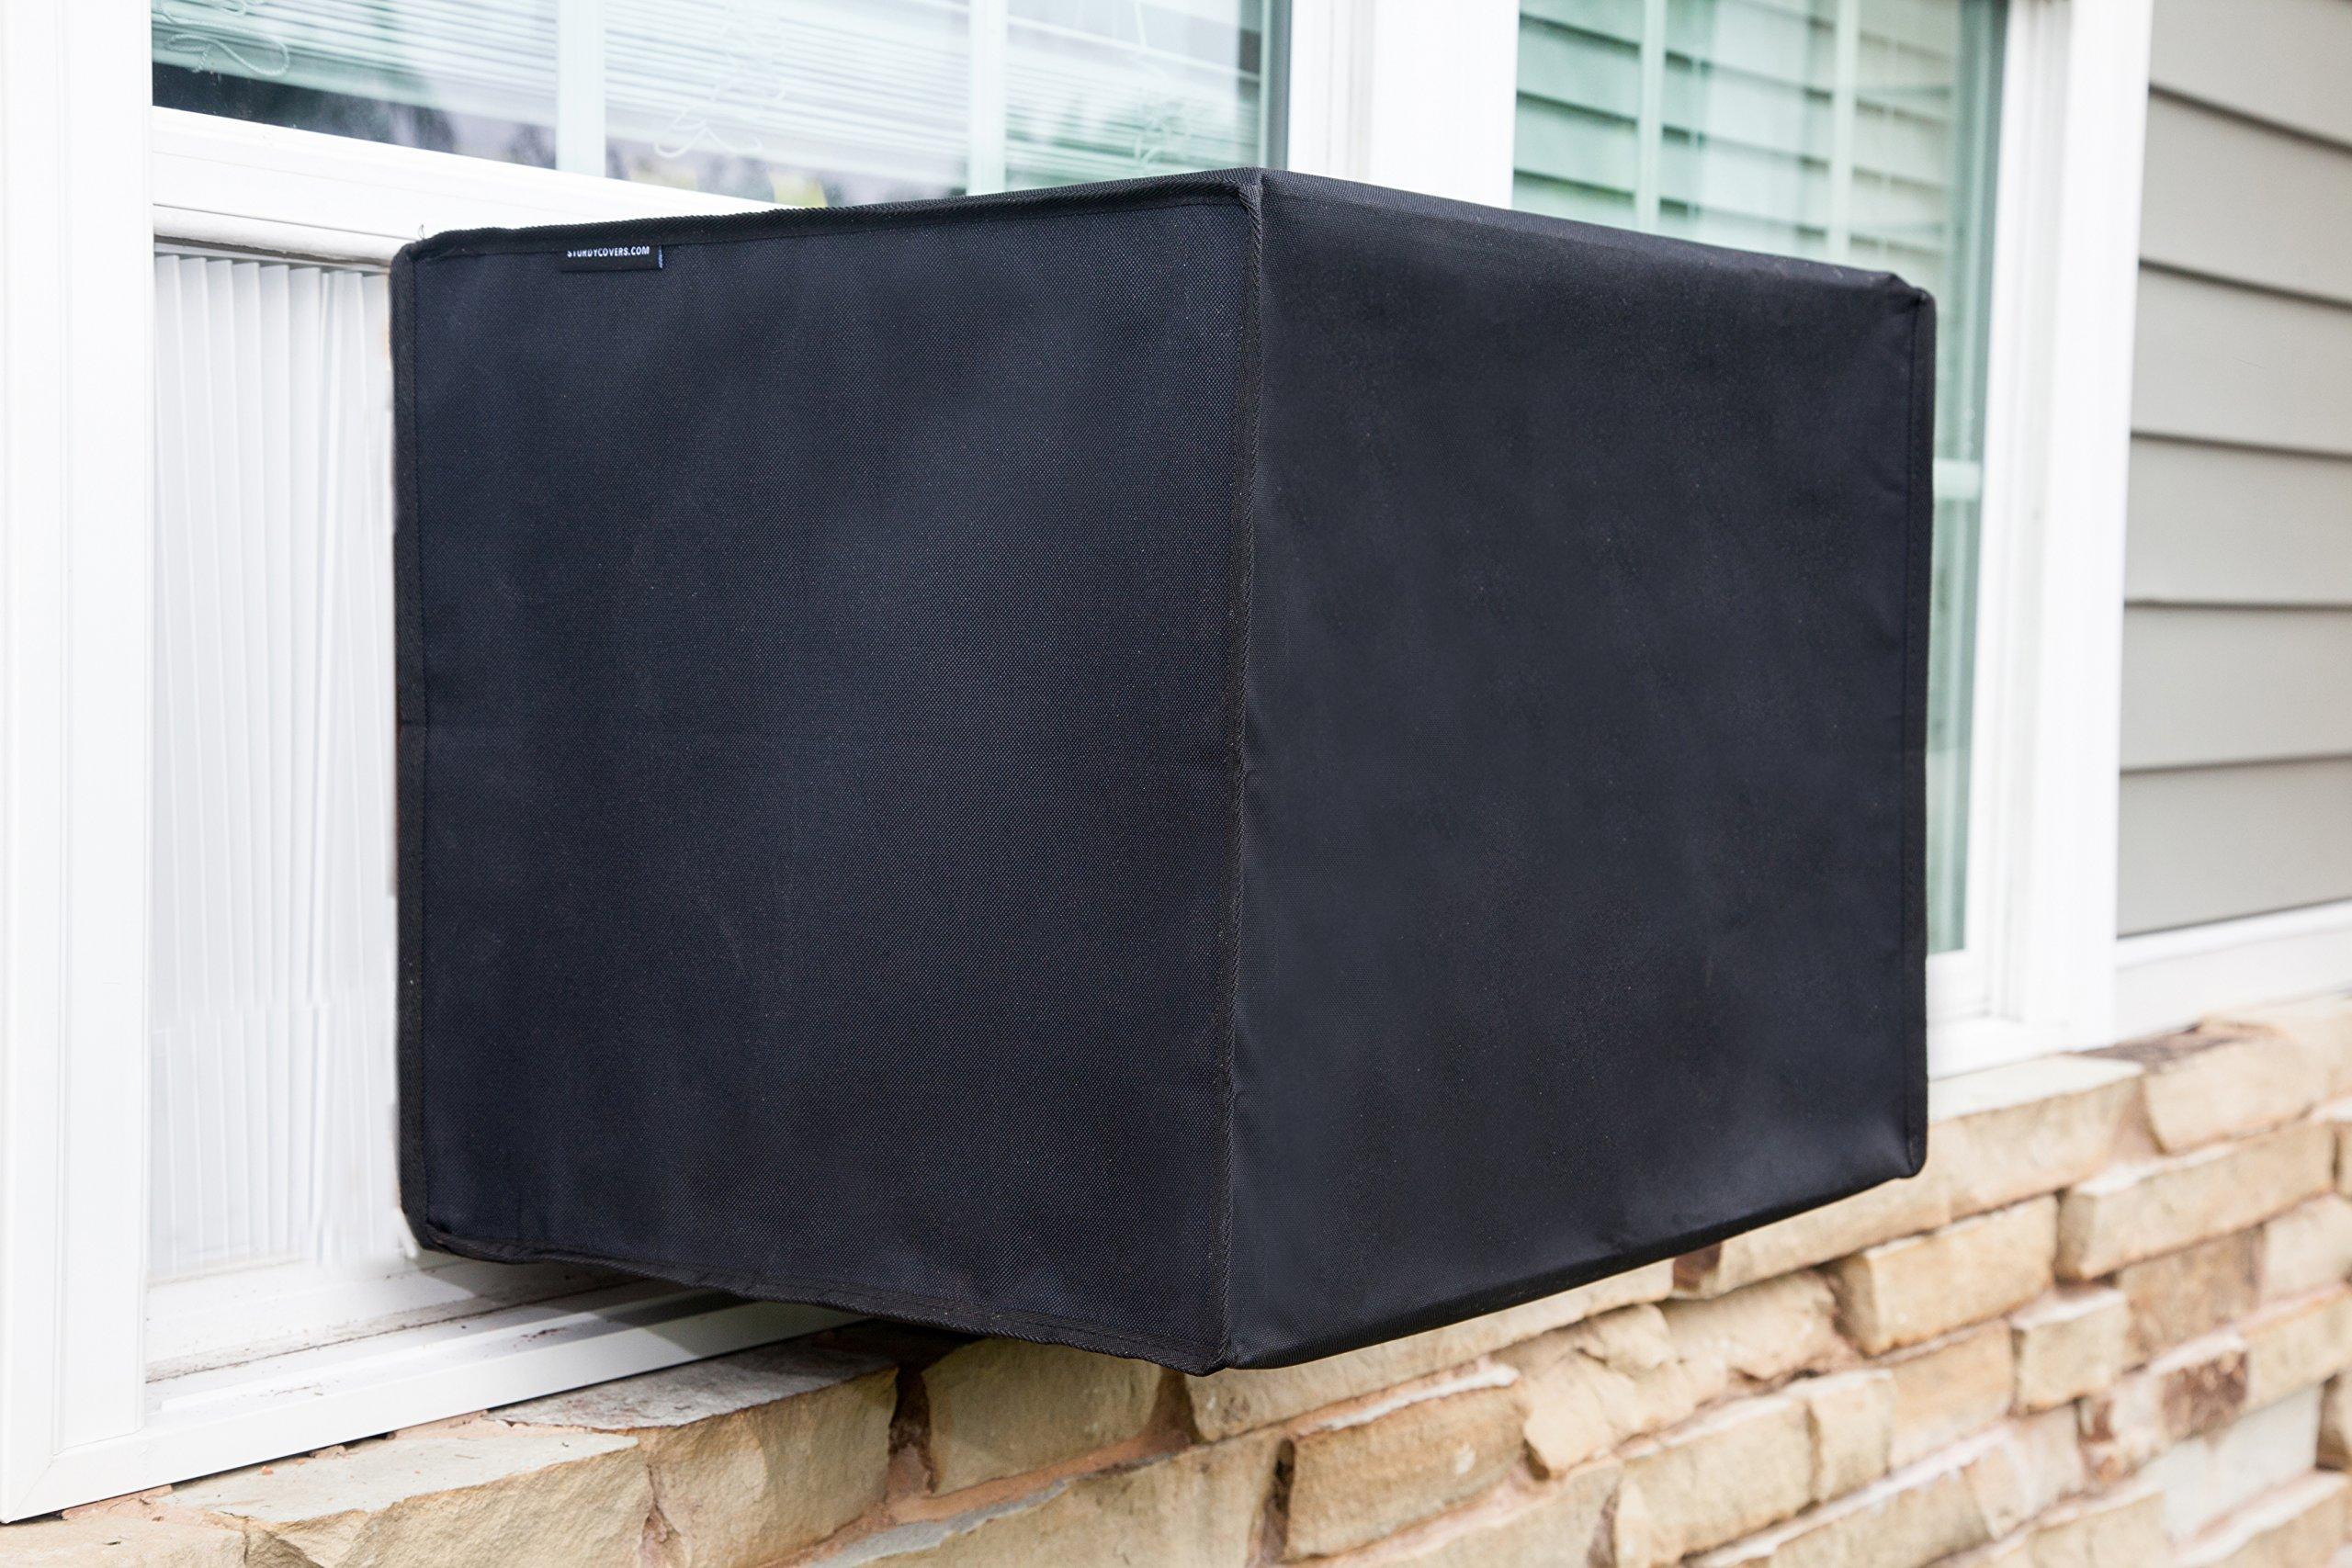 Sturdy Covers AC Defender - Window Air Conditioner Unit Cover - AC Cover by STURDY COVERS EST. 2015